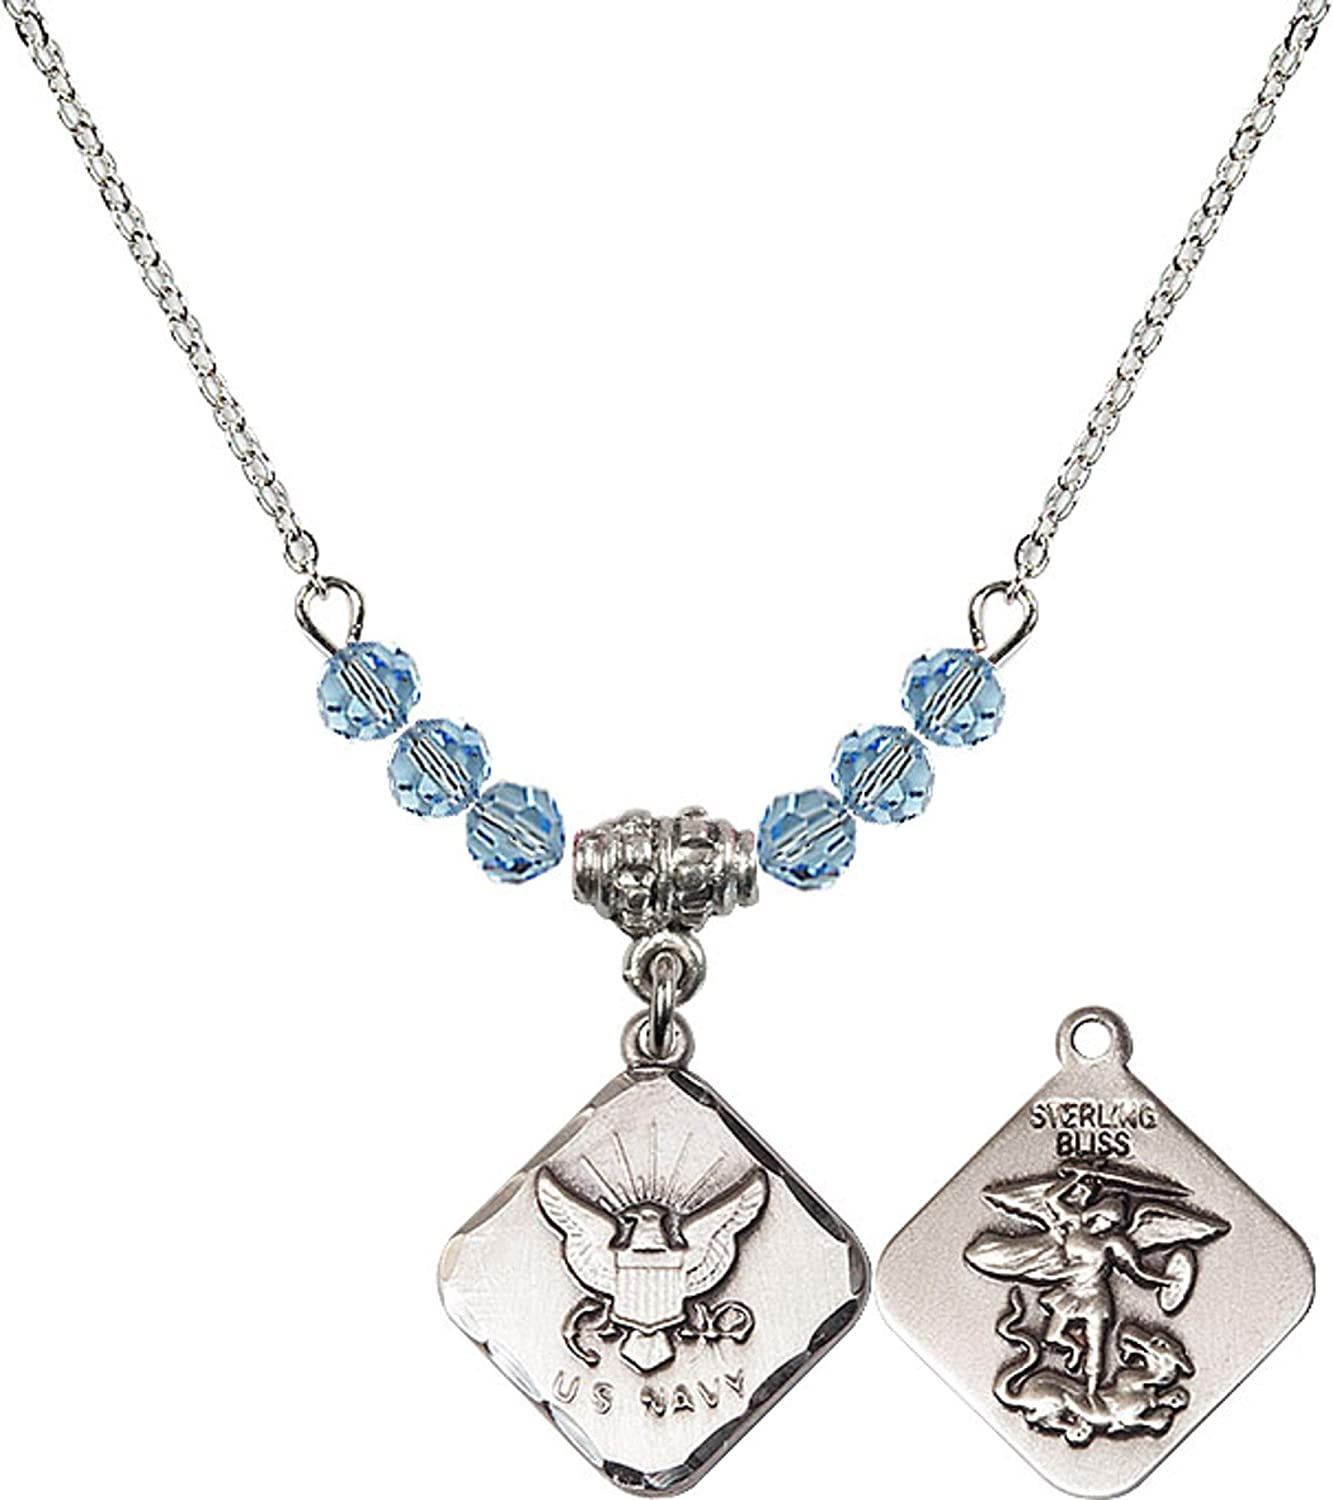 Bonyak Jewelry 18 Inch Rhodium Plated Necklace w// 4mm Blue March Birth Month Stone Beads and Navy Diamond Charm